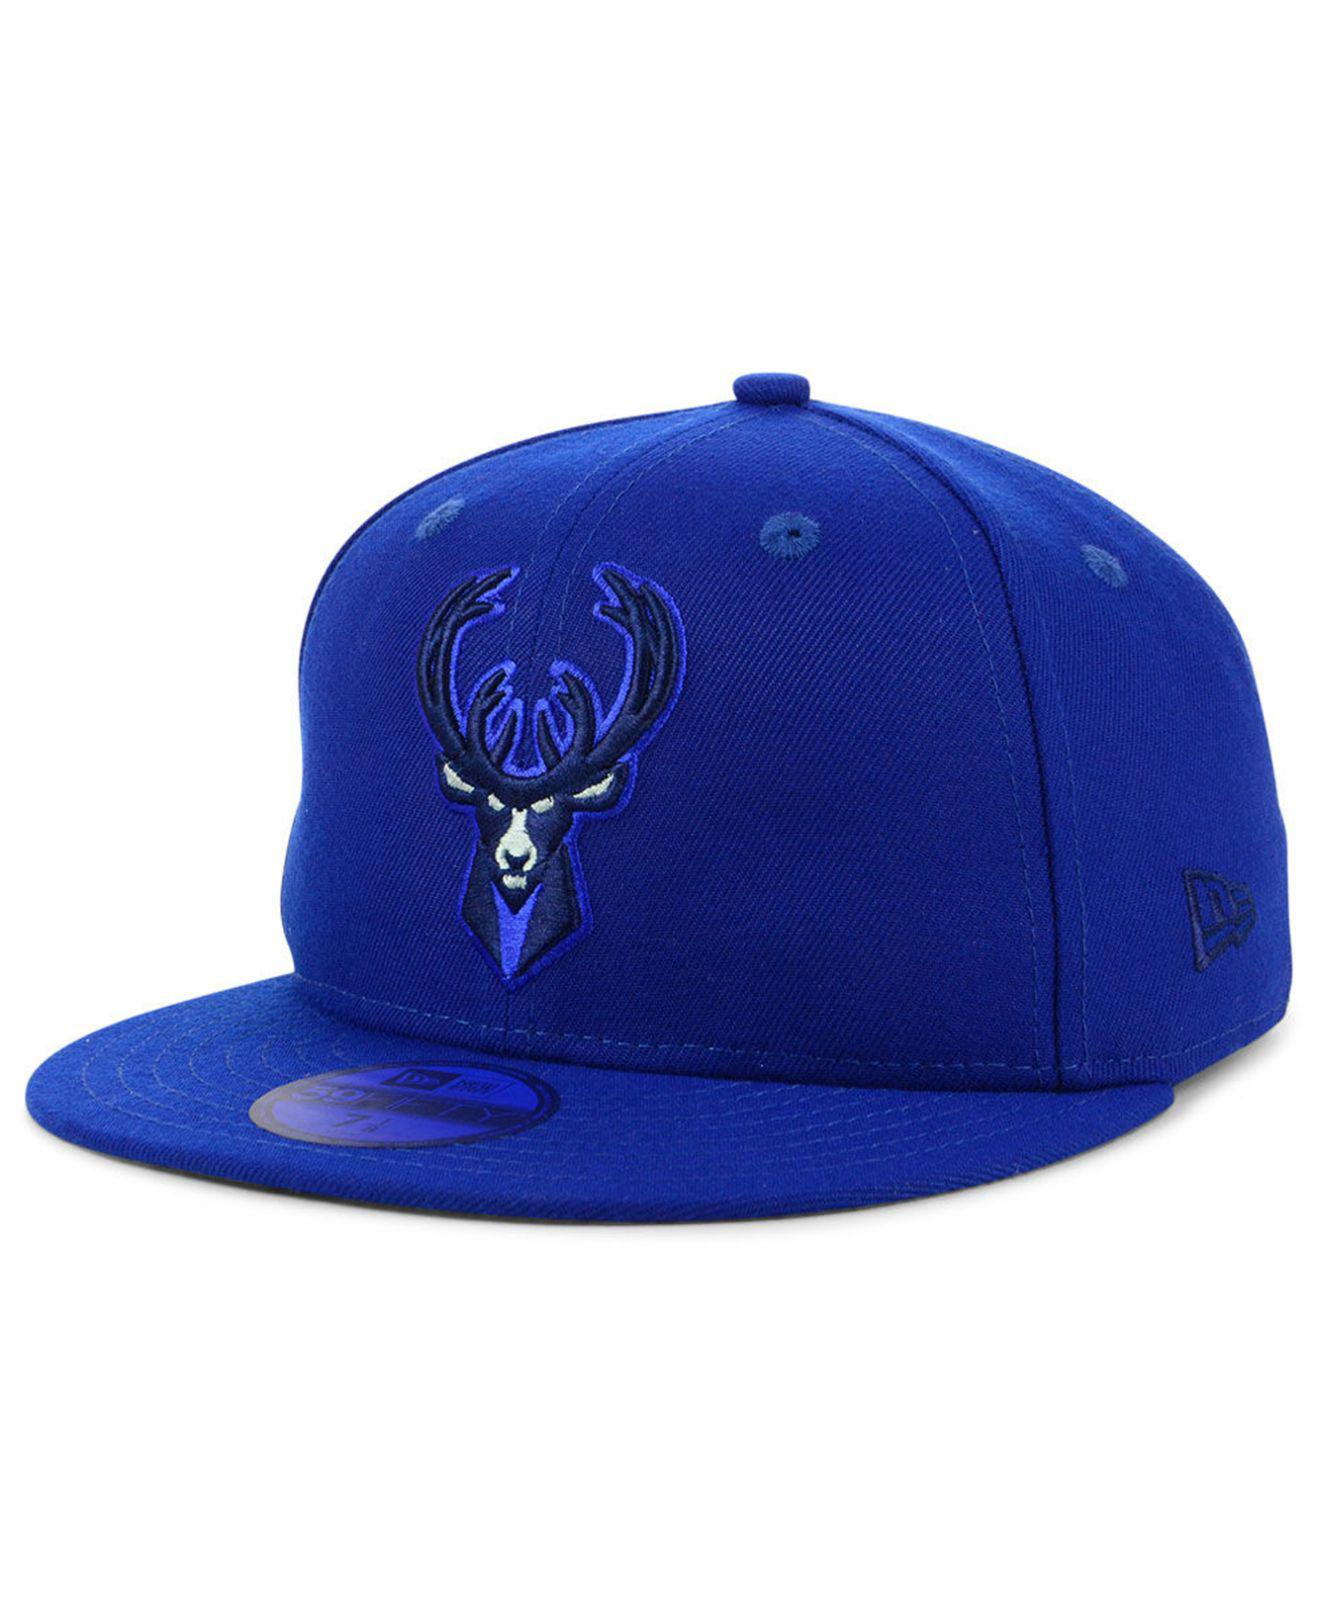 05c0dd468db53f ... discount code for ktz. mens blue milwaukee bucks color prism pack 59fifty  fitted cap 60967